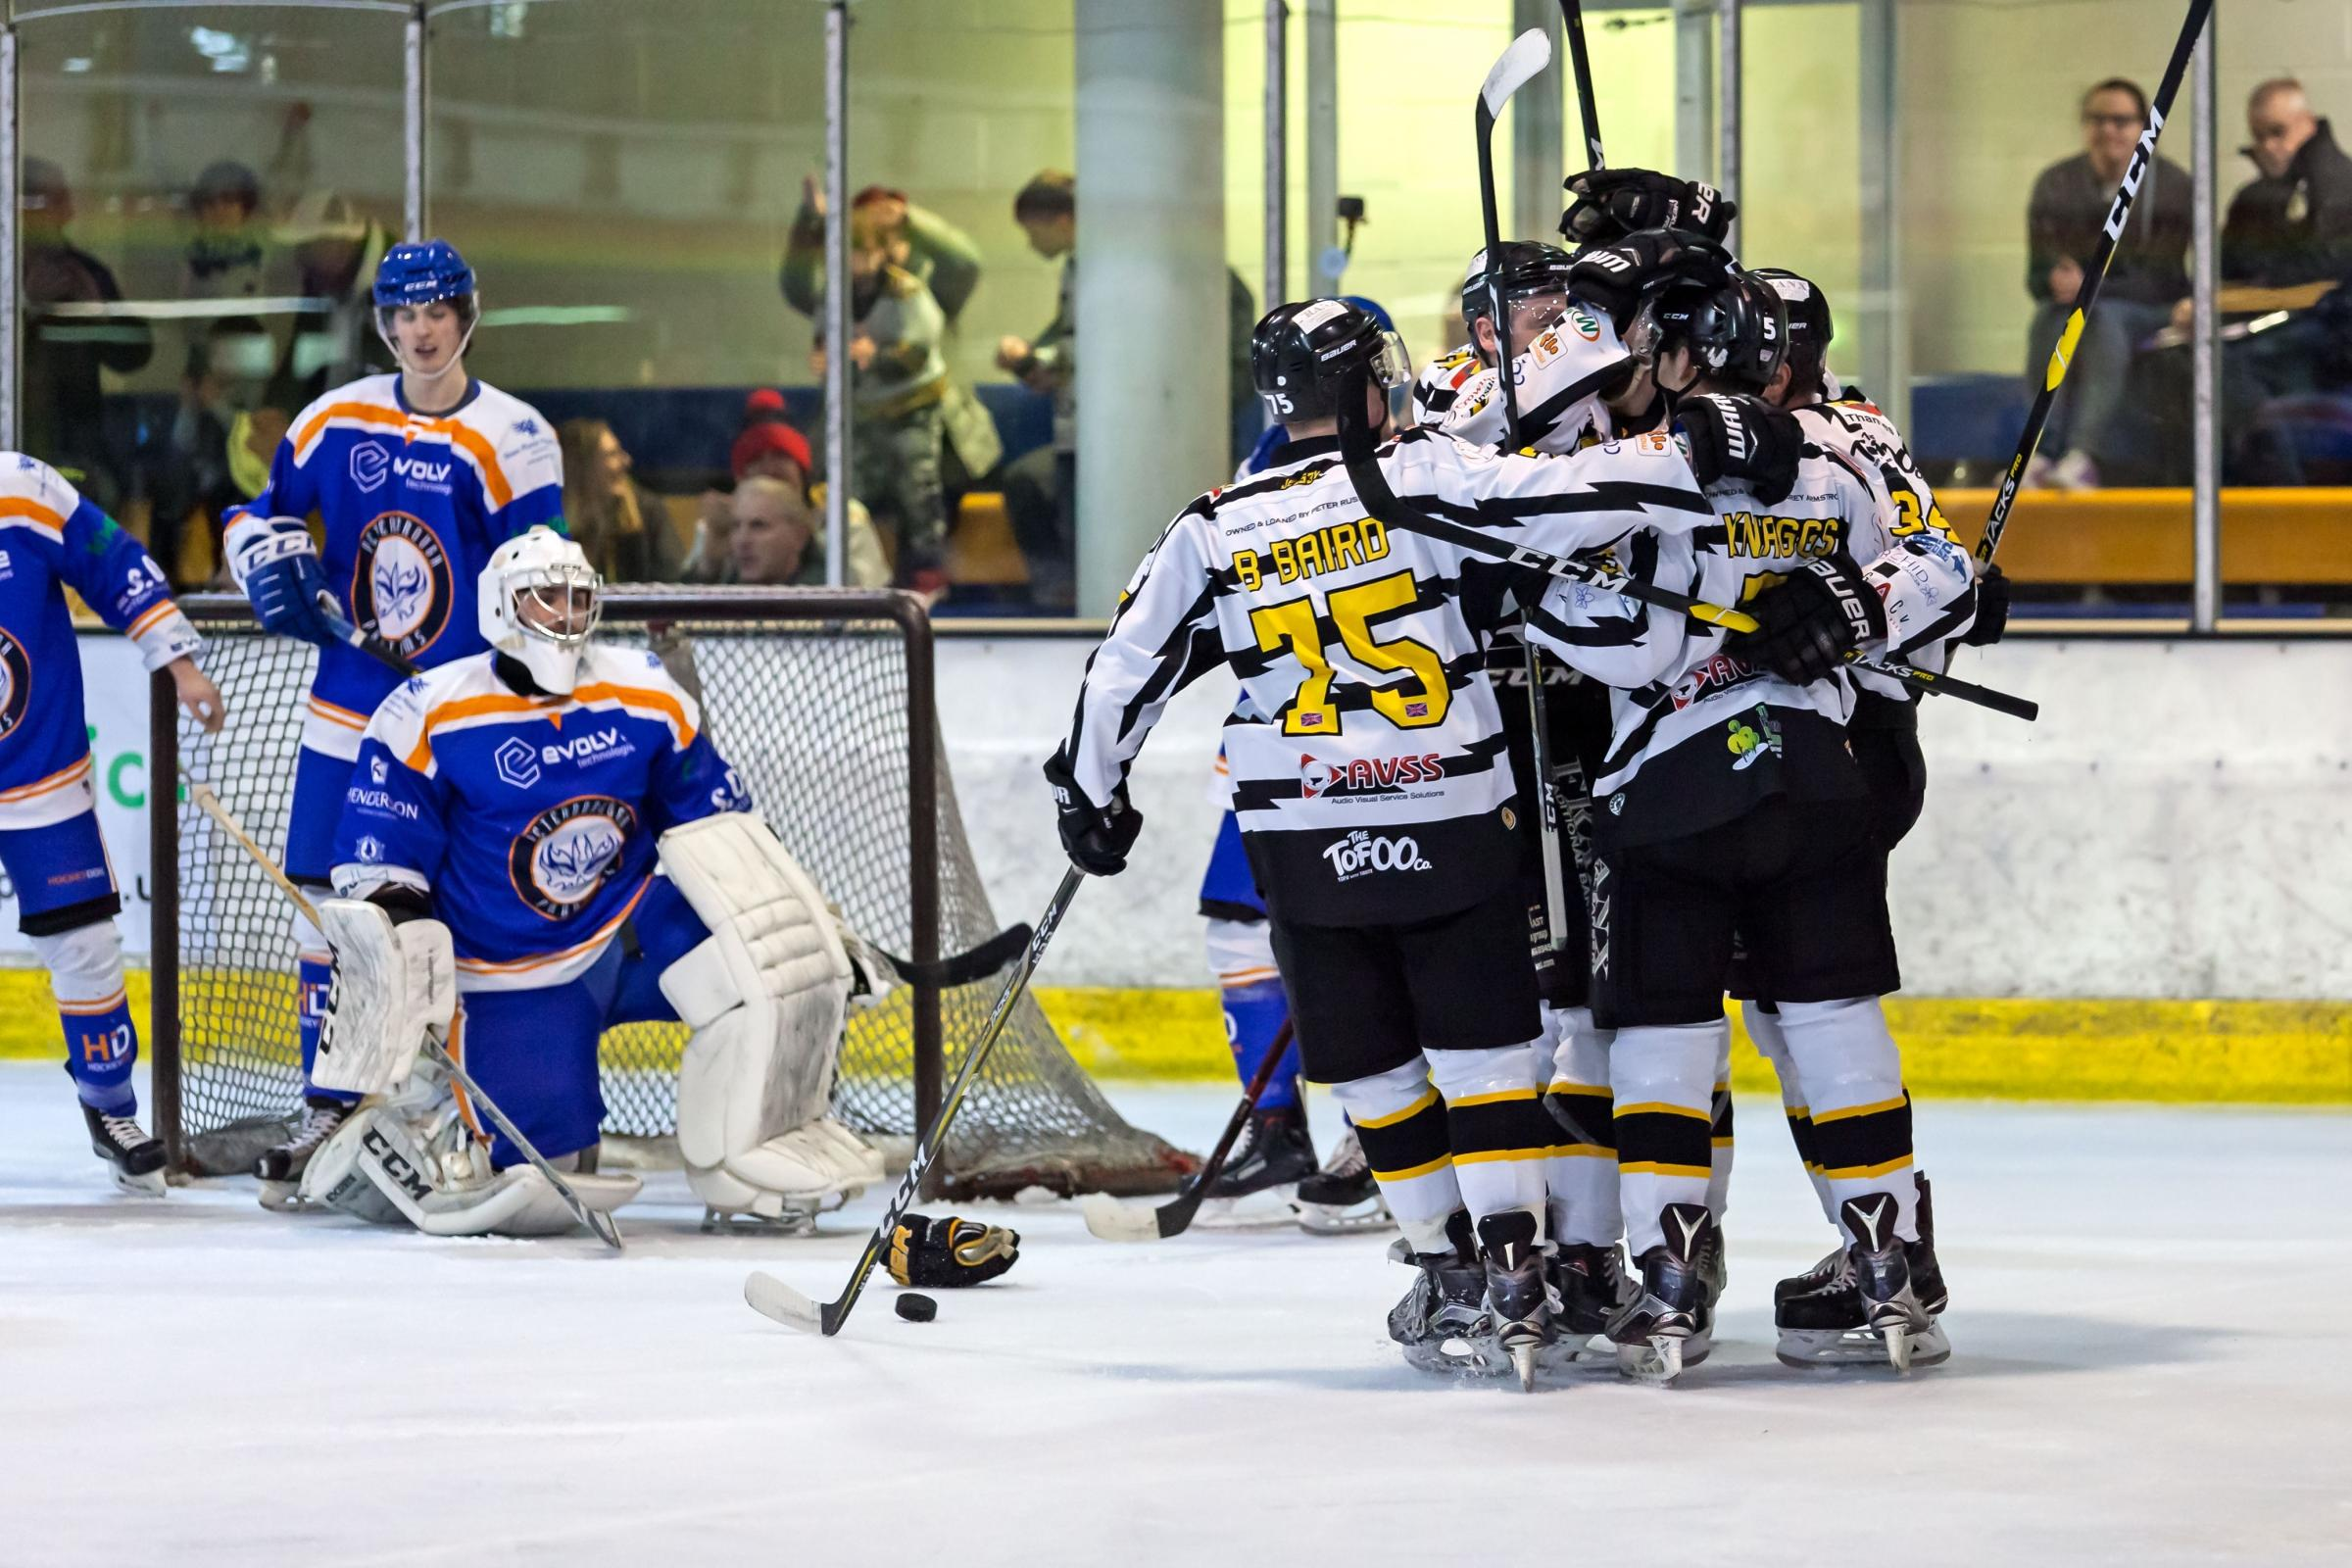 Bees v Phantoms - Bees goal celebration - by Kevin Slyfield